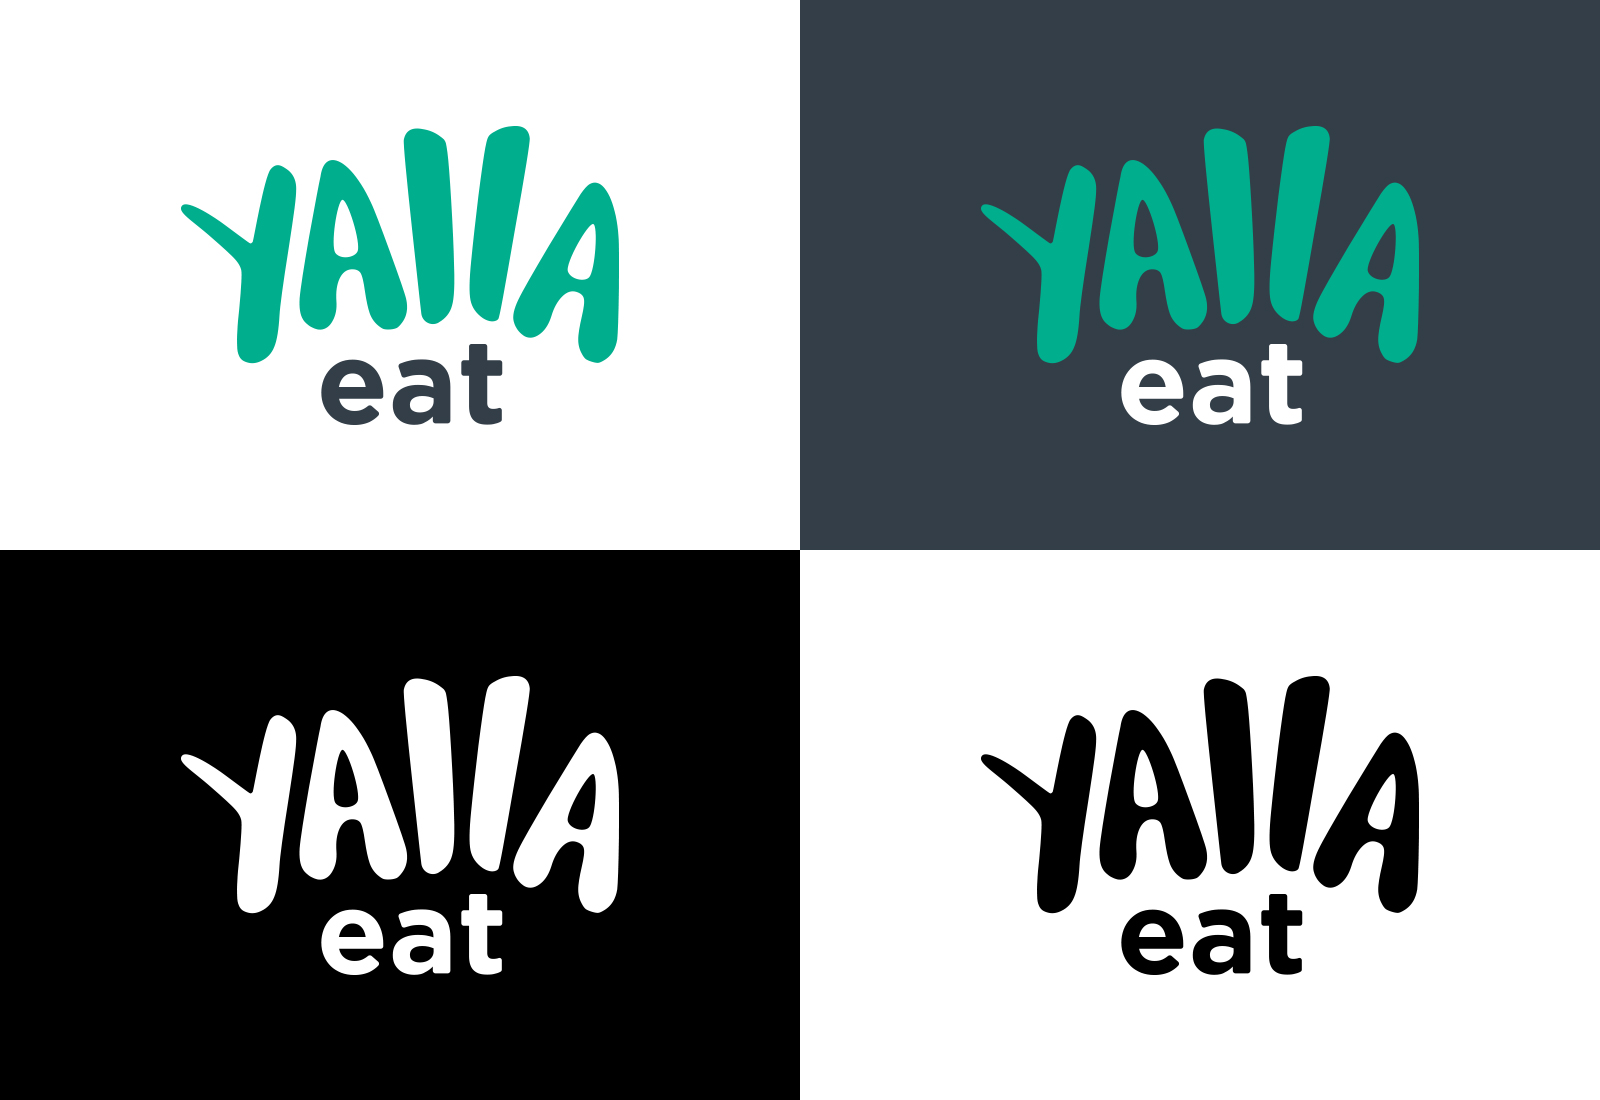 Design concept of Yalla eat logo